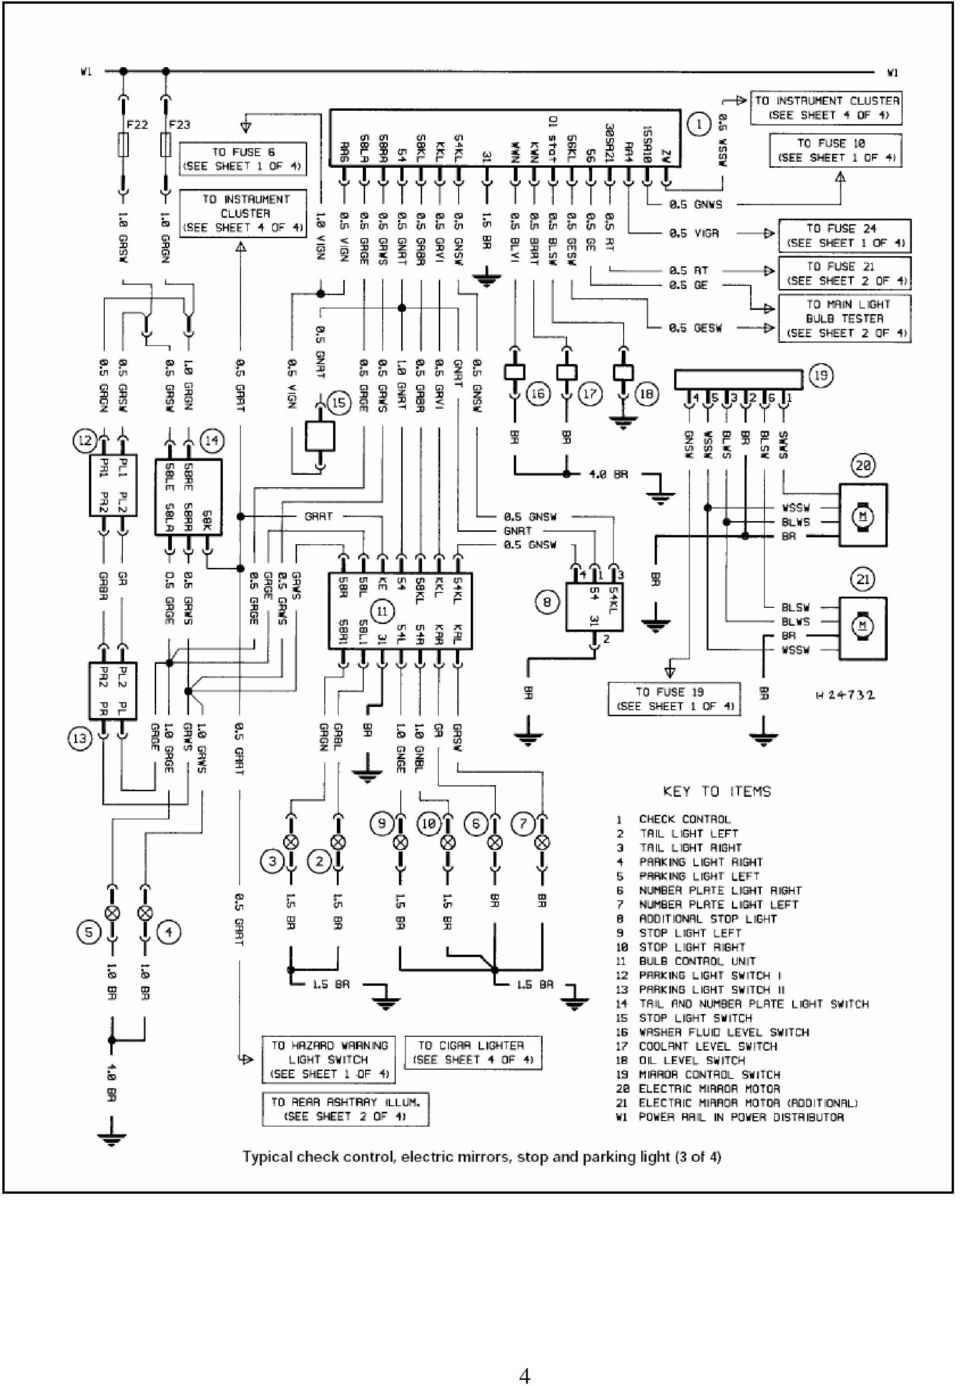 Colour Codes Diagrams Index Pdf Traffic Light Wiring Diagram In Addition Flasher Relay Circuit 4